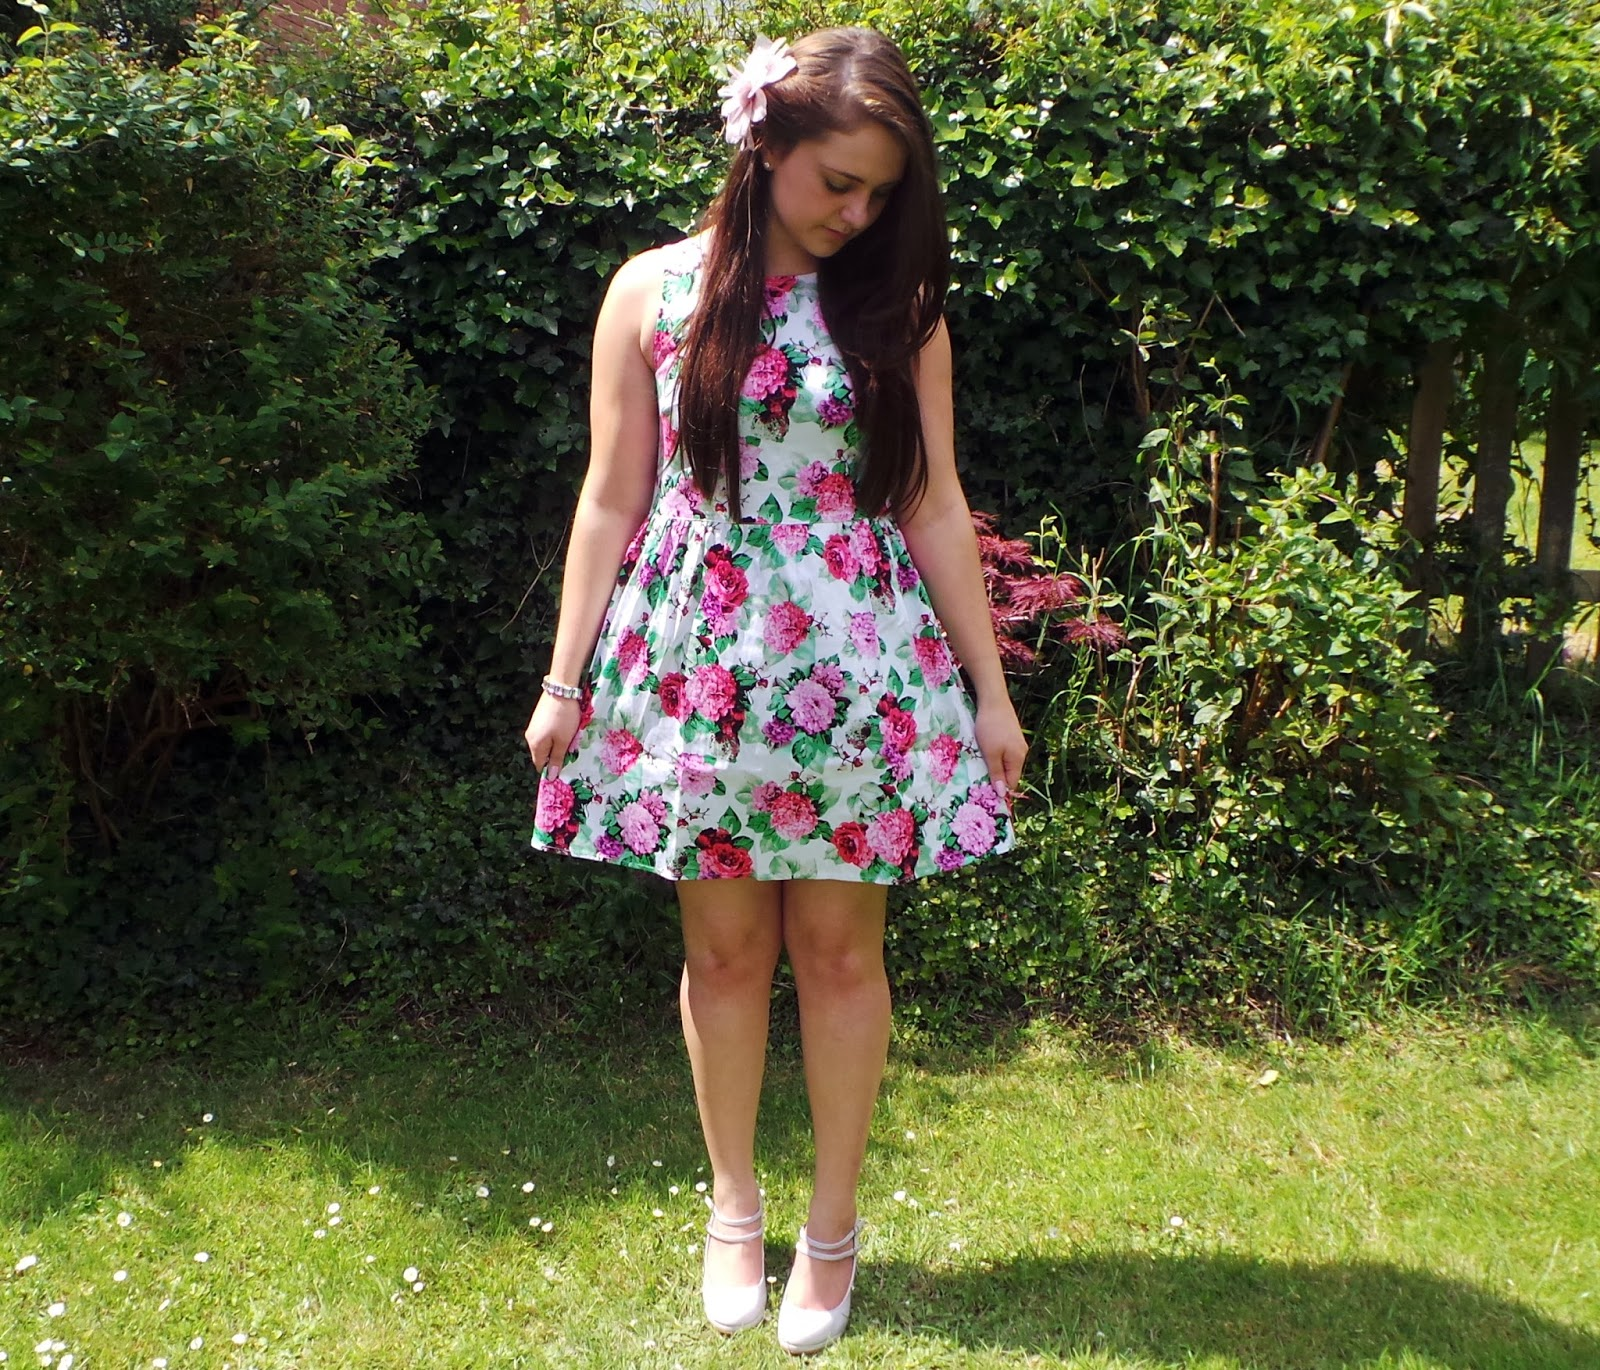 outfit, outfit of the day, ootd, fashion, fashion blog, uk fashion blog, uk style blog, floral dress, fashion union, summer dress, pretty, outfitpost, ghislaine floral skater dress